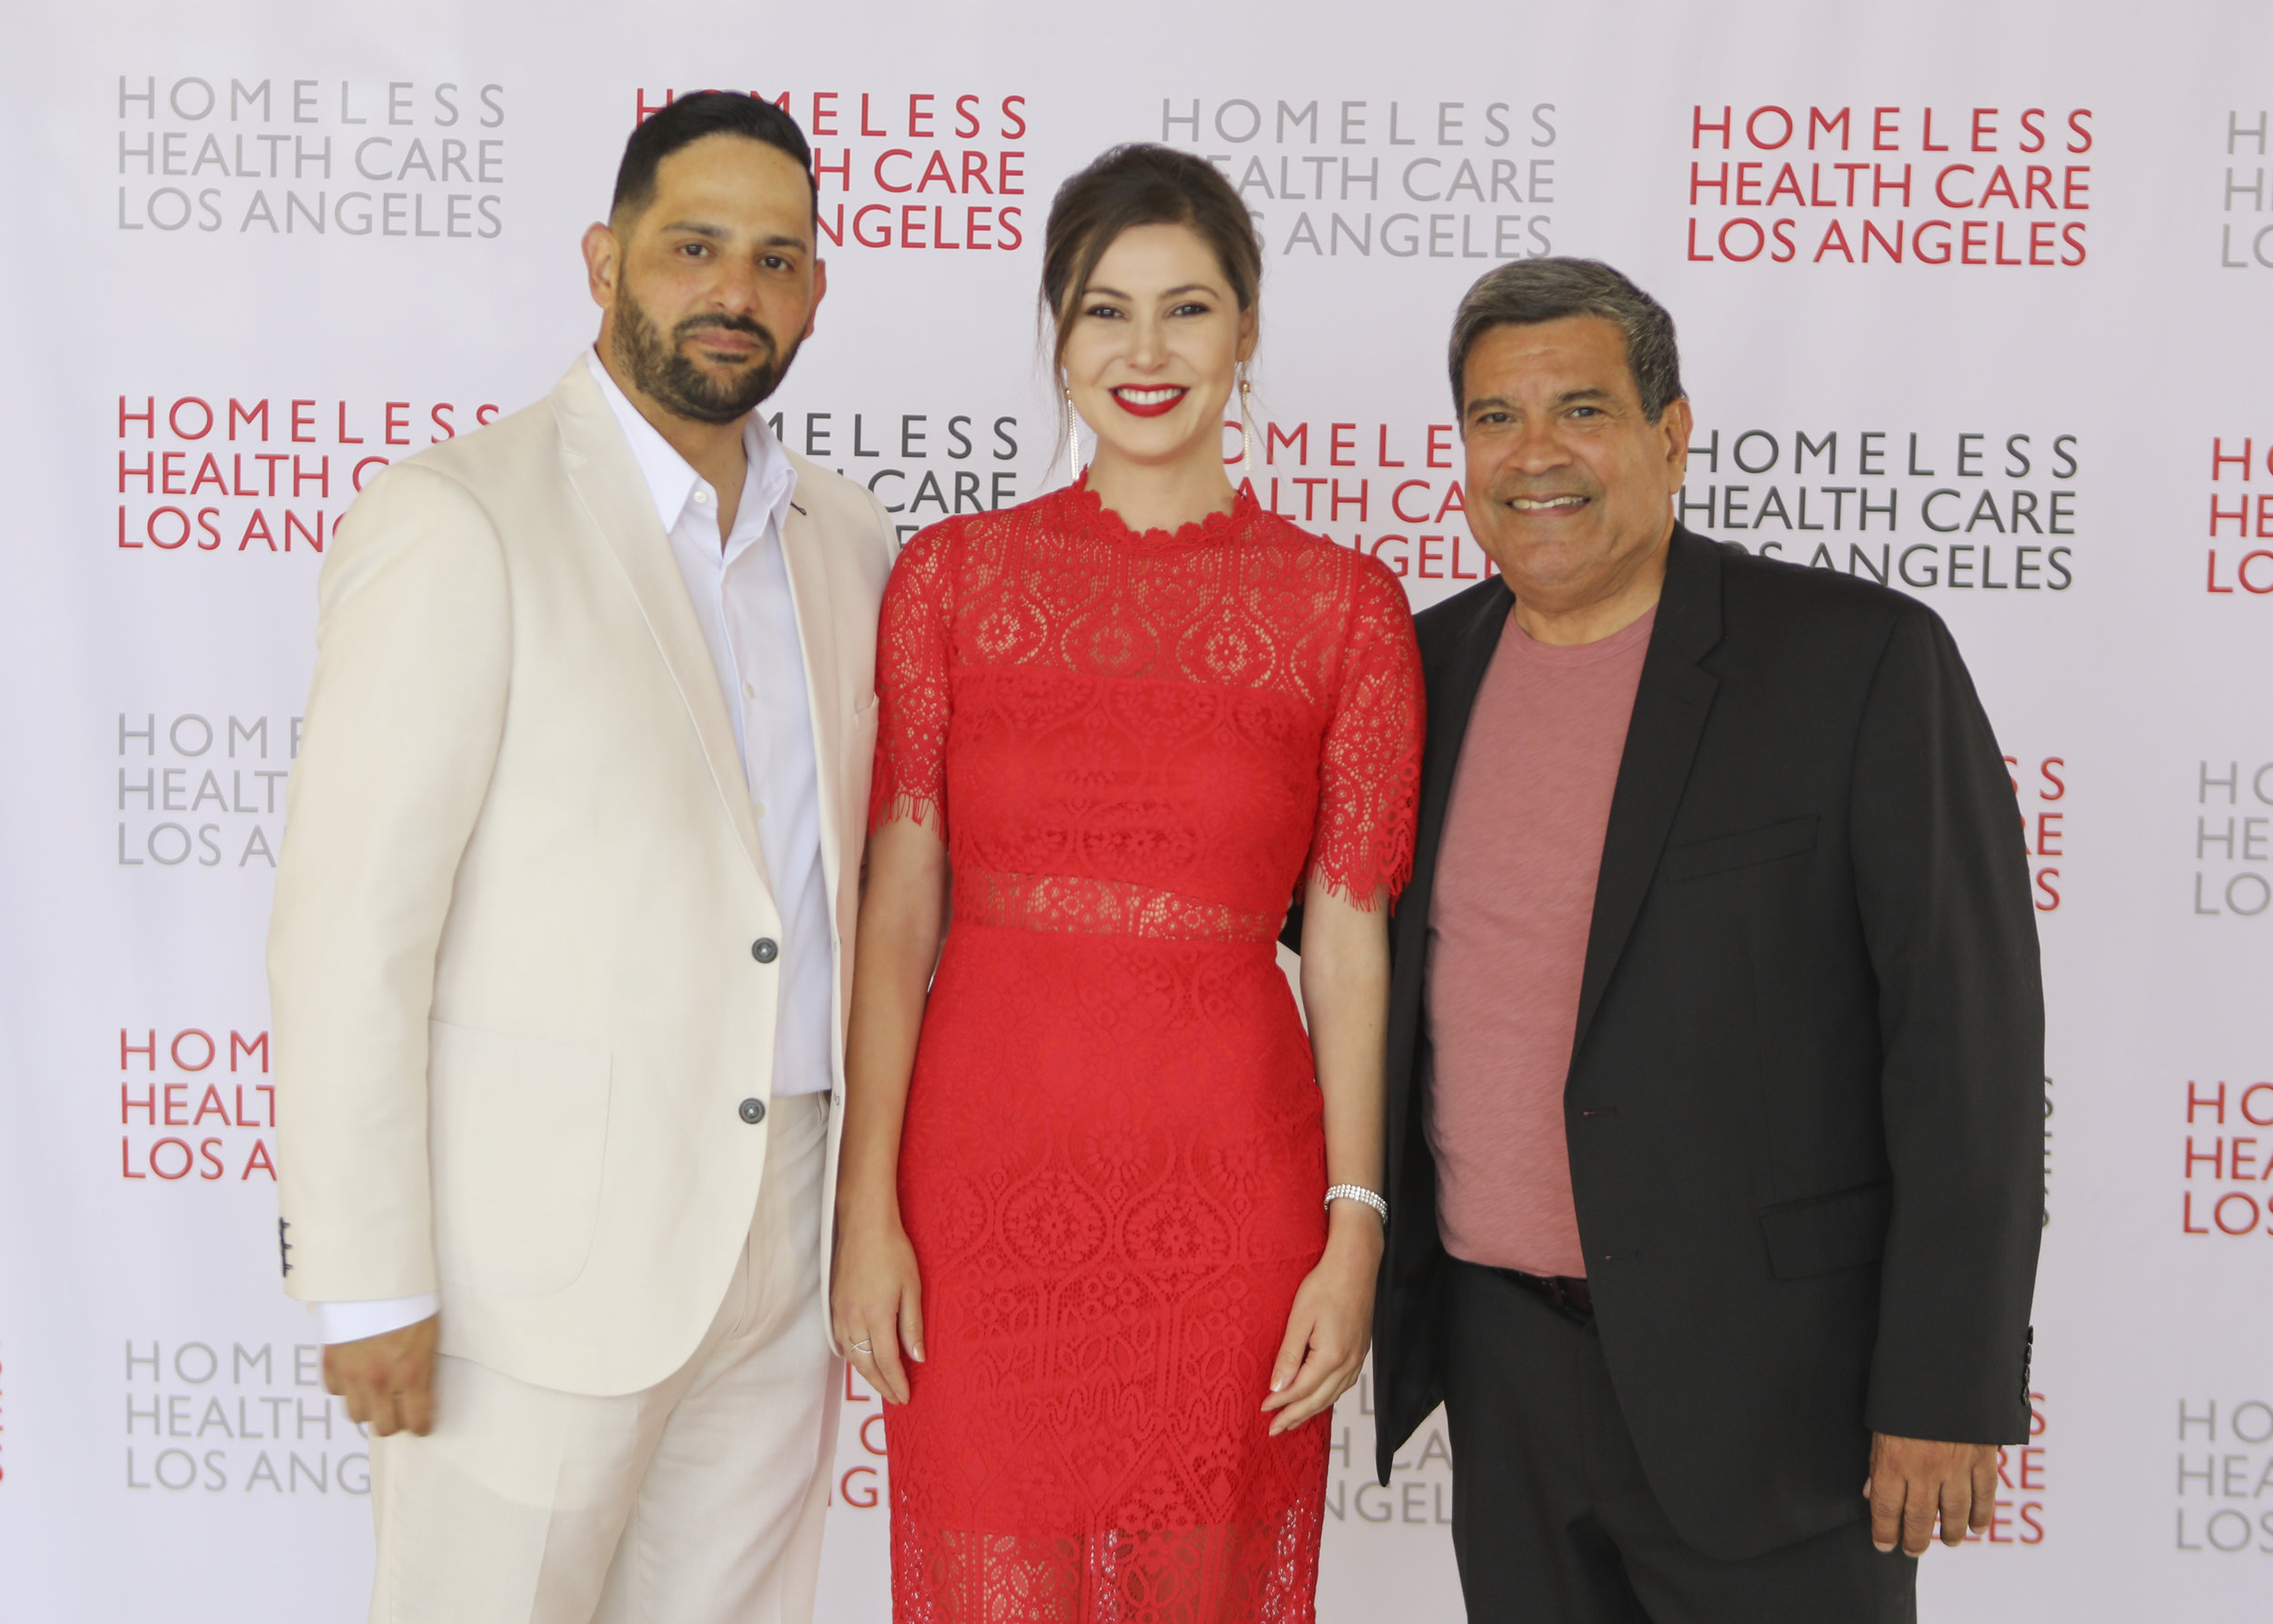 Homeless Healthcare Plato de Oro 2019_21.JPG